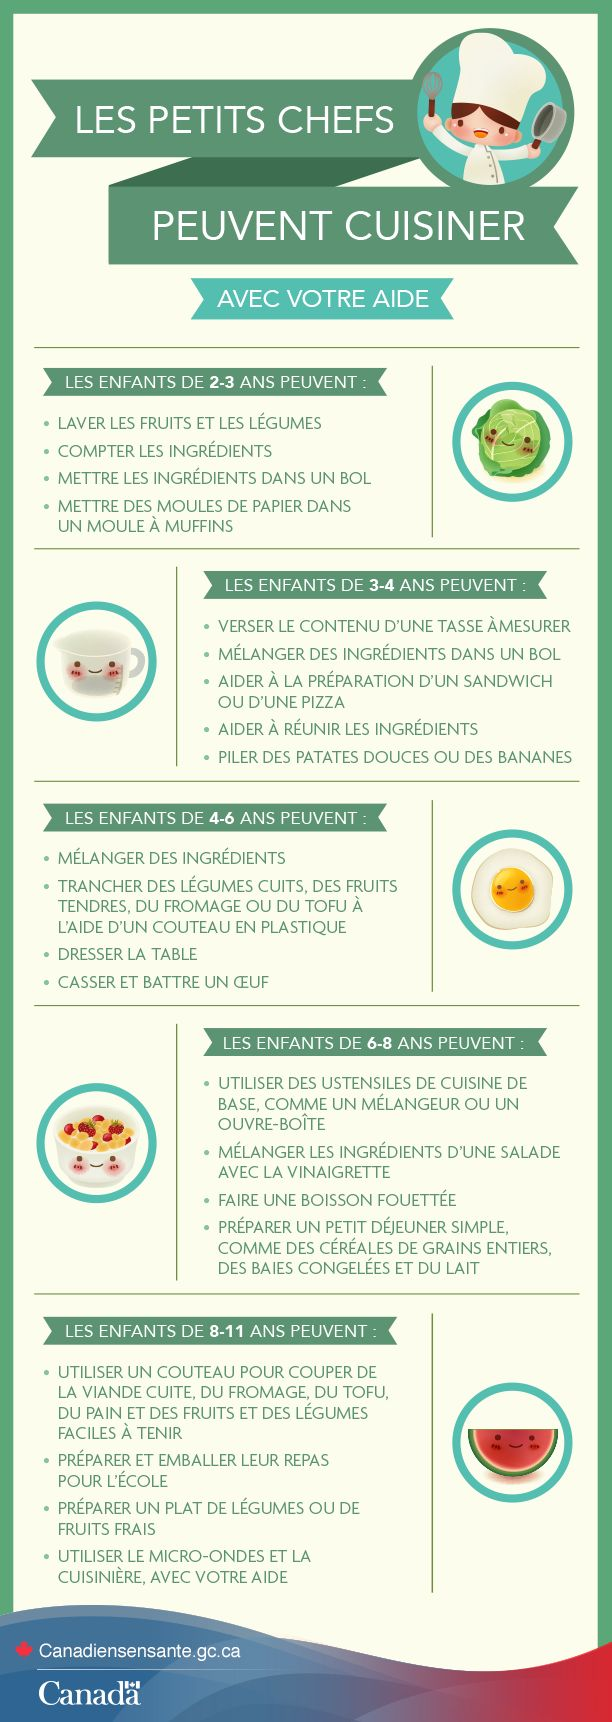 Cuisinez avec votre petit chef dès aujourd'hui http://www.canadiensensante.gc.ca/eating-nutrition/healthy-eating-saine-alimentation/cooking-kids-cuisiner-enfants-fra.php?utm_source=pinterest_hcdns&utm_medium=social&utm_content=Mar3_CookingKids_FR&utm_campaign=social_media_14